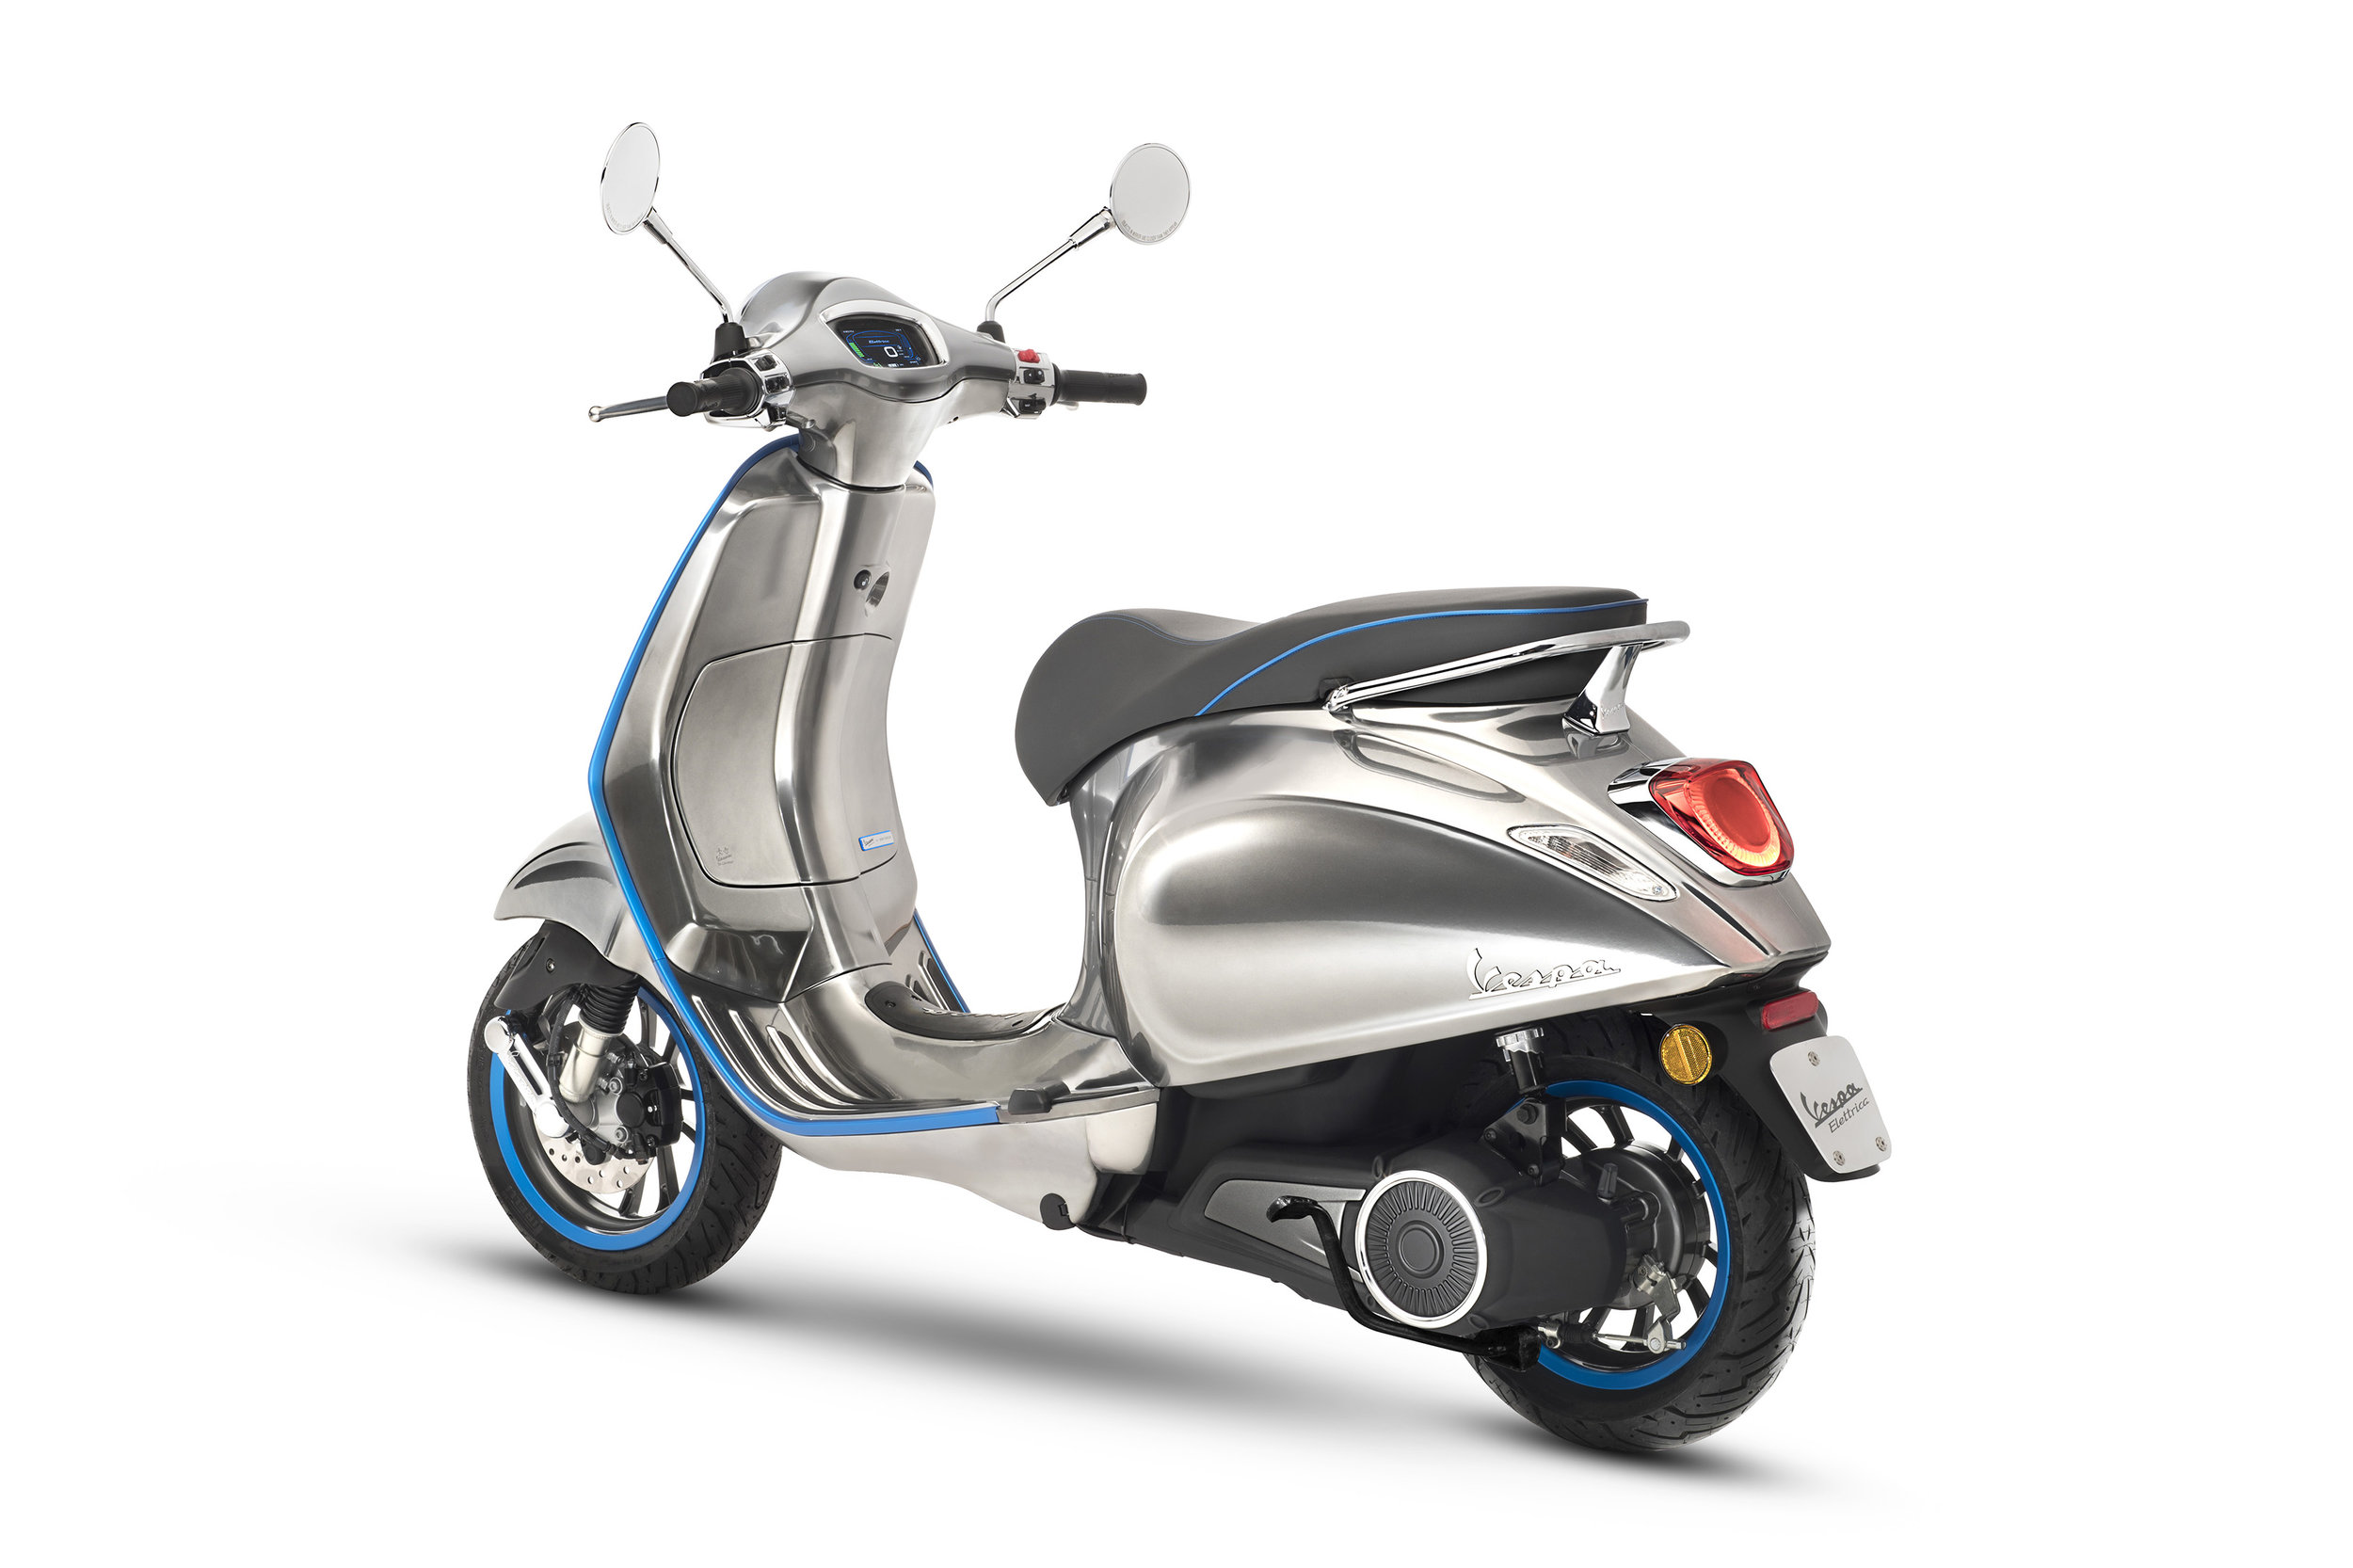 Vespa-Electric-Scooter-Elettrica-Will-Be-Around-in-2018.jpg